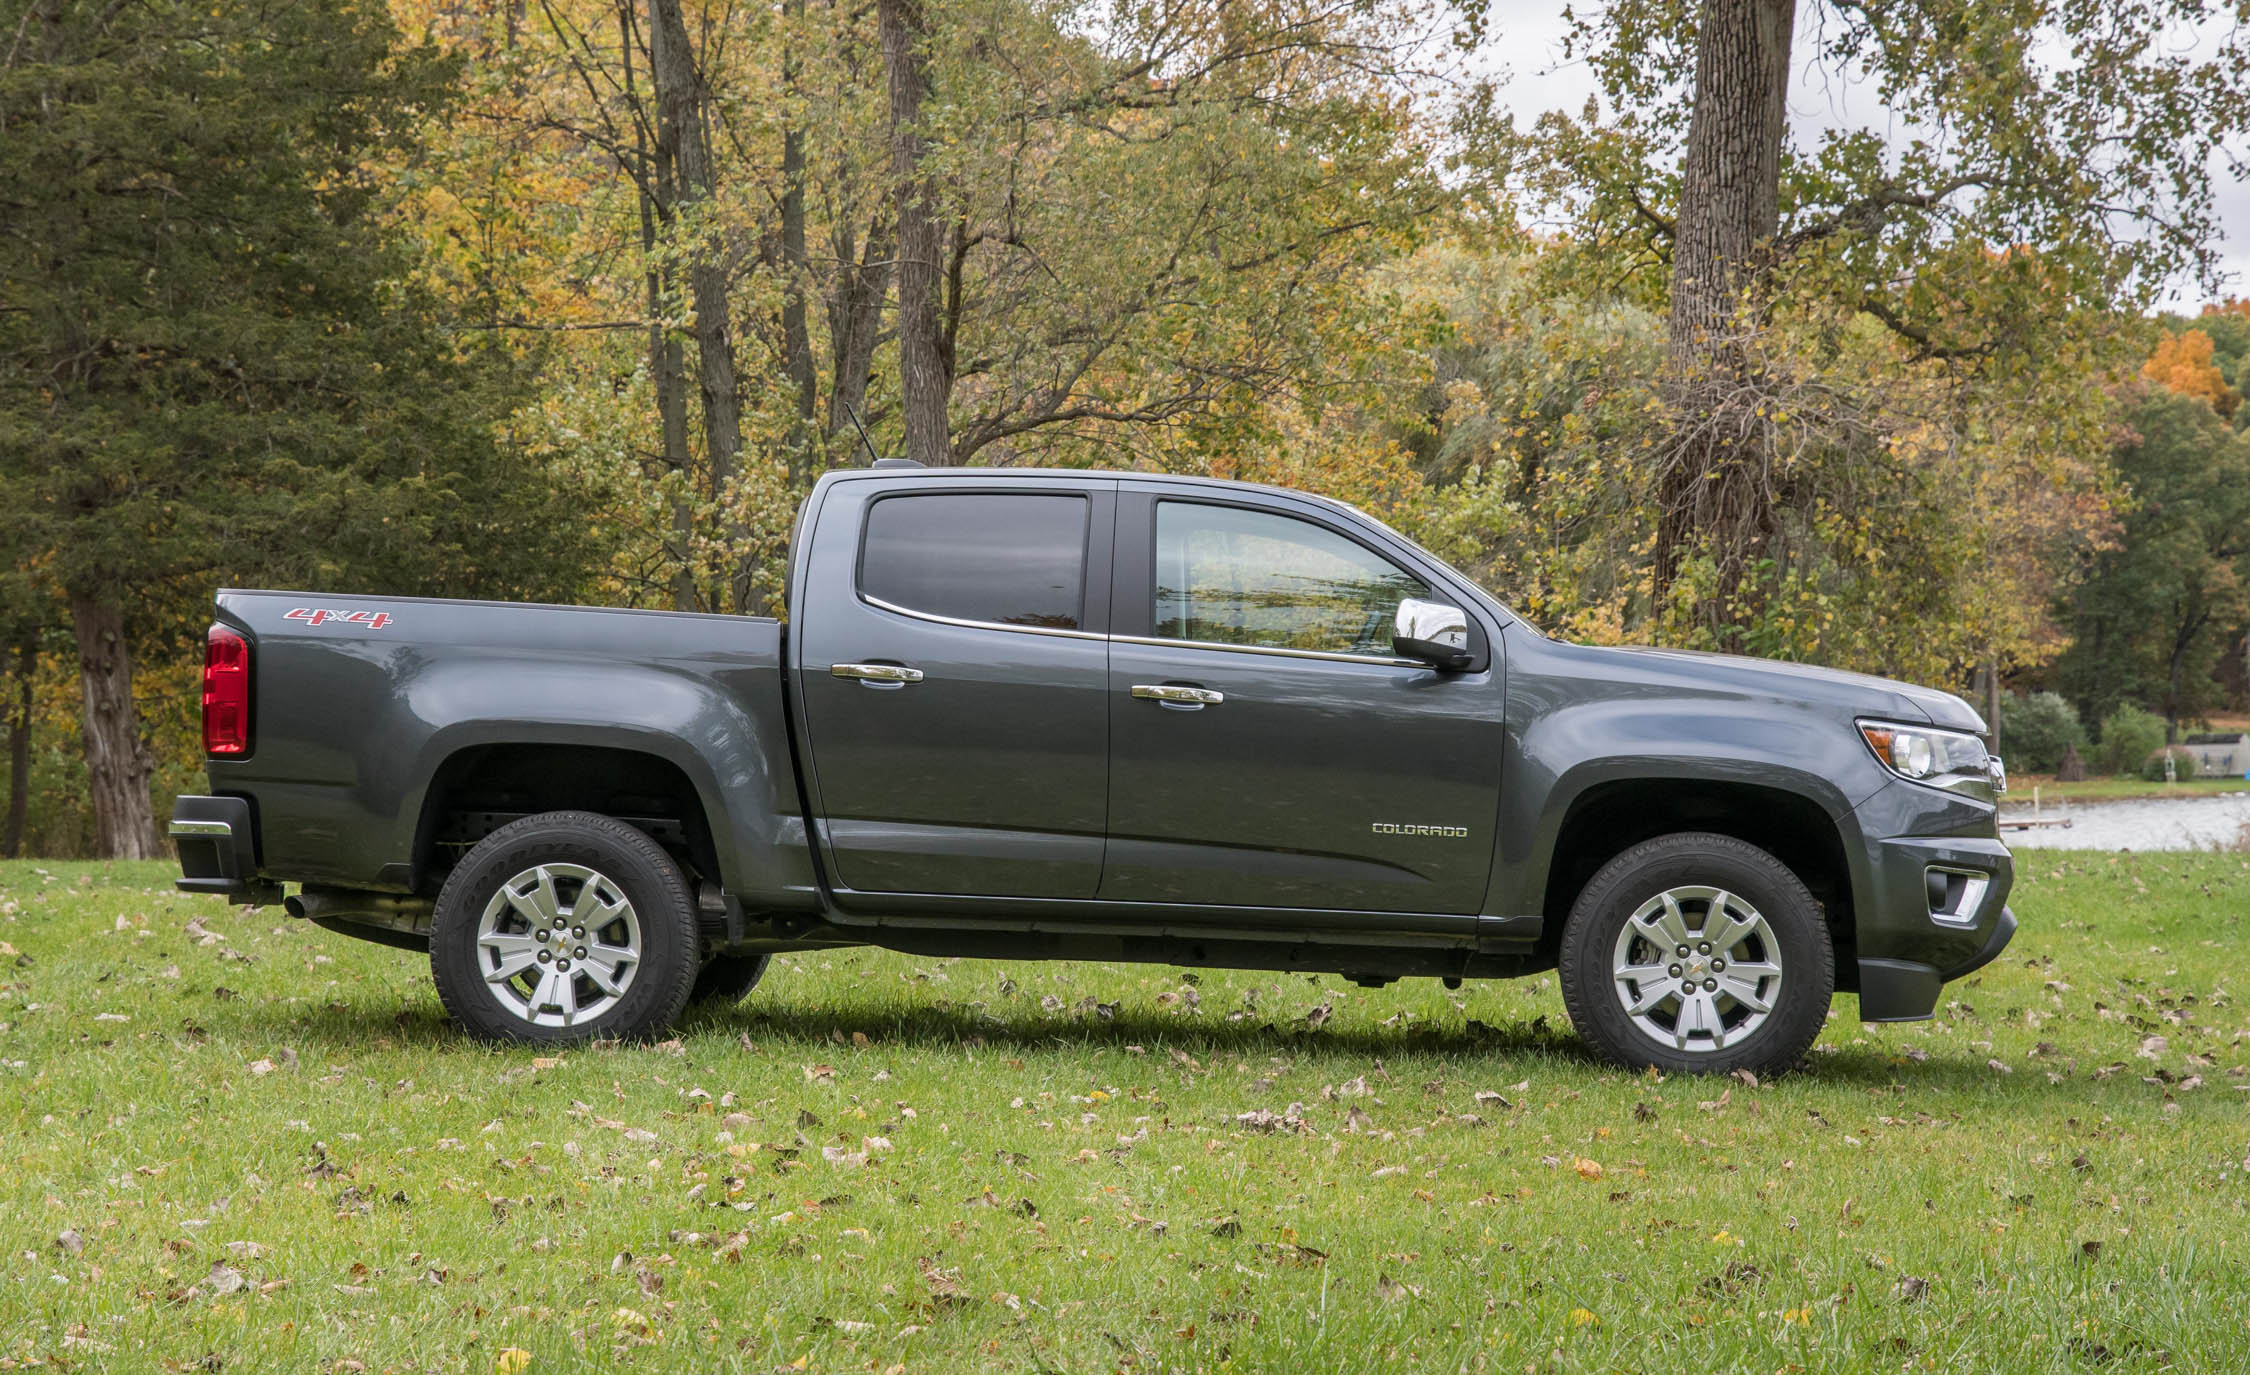 2017 Chevrolet Colorado LT Exterior Side (Photo 22 of 41)